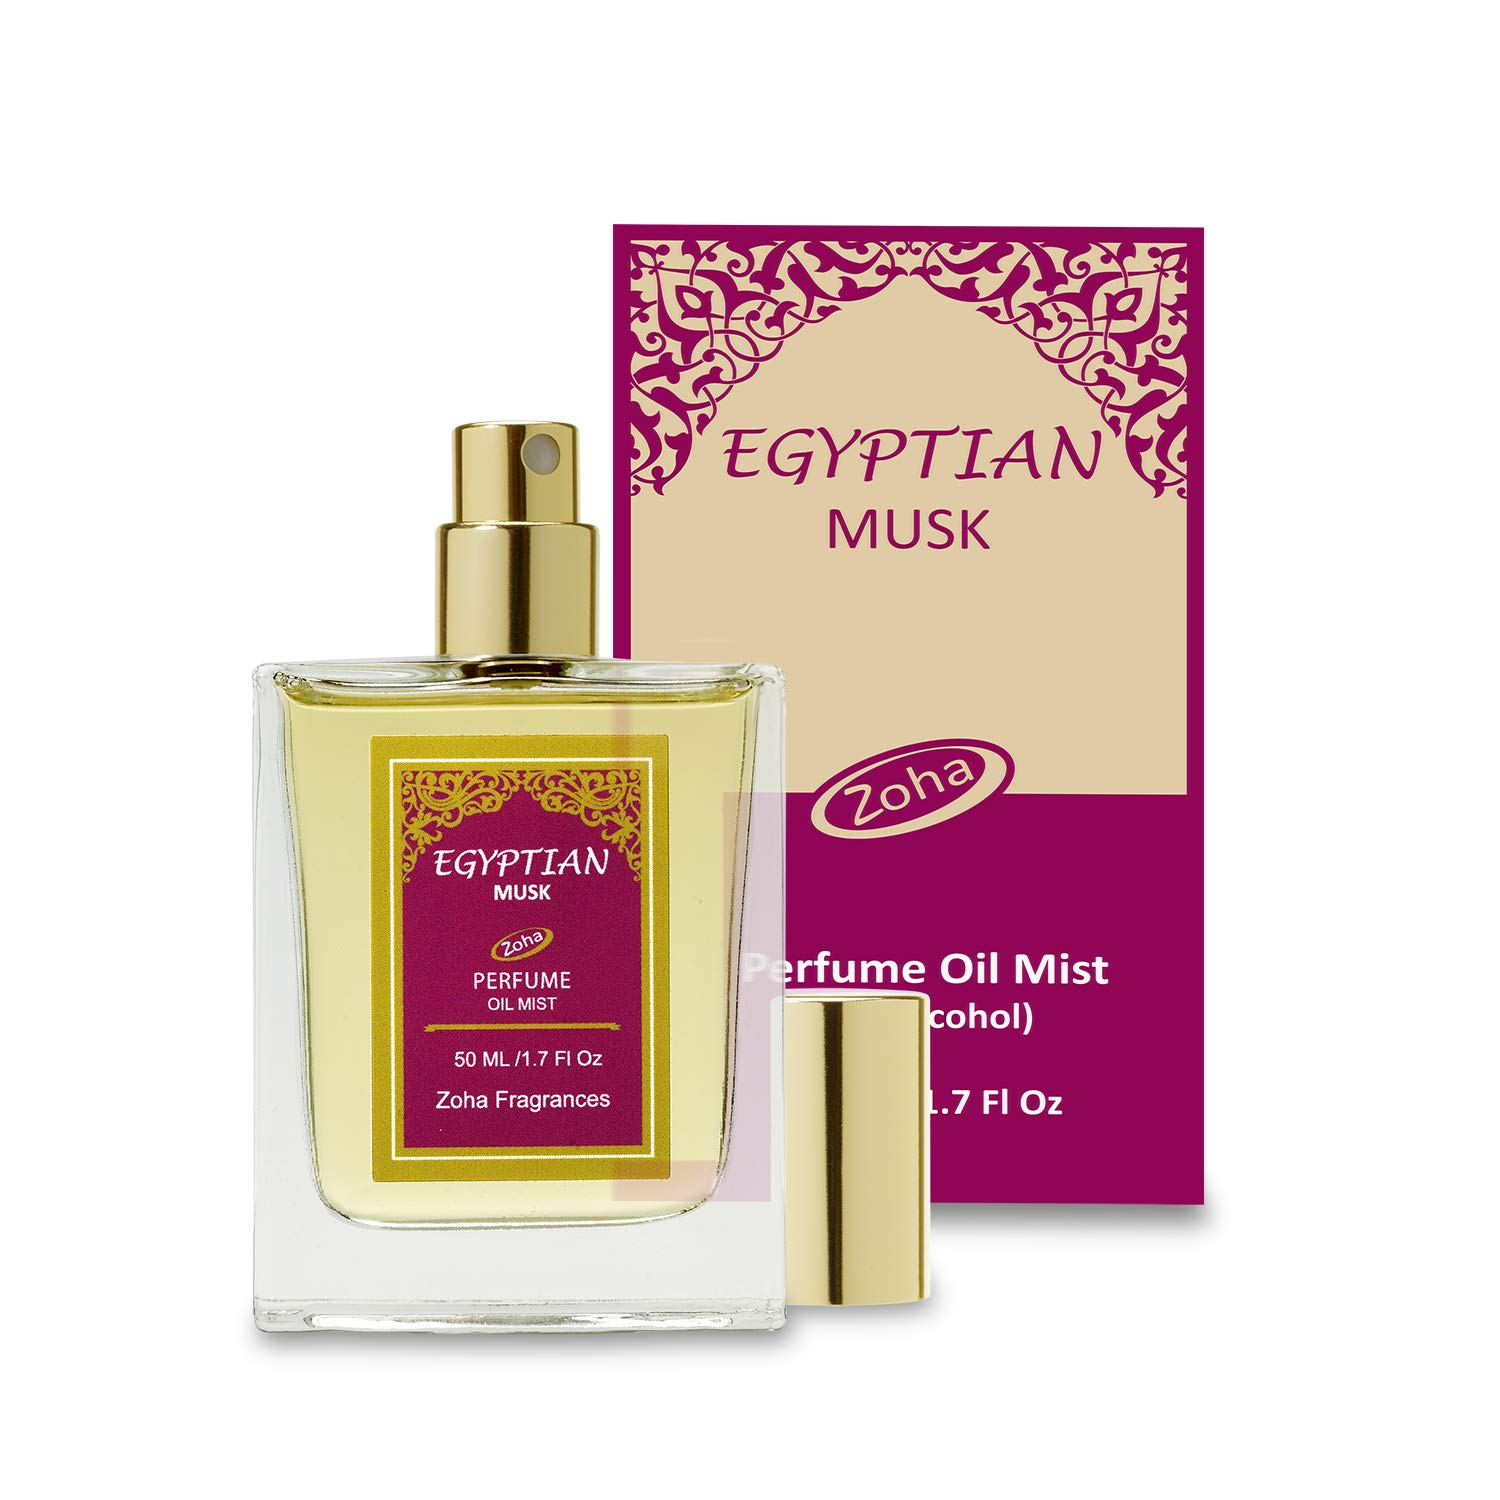 Egyptian Musk Perfume Oil Mist (No Alcohol) Egyptian Oil Fragrance - Essential Oils and Perfumes for Women and Men by Zoha Fragrances, 50 ml / 1.7 fl Oz by Zoha